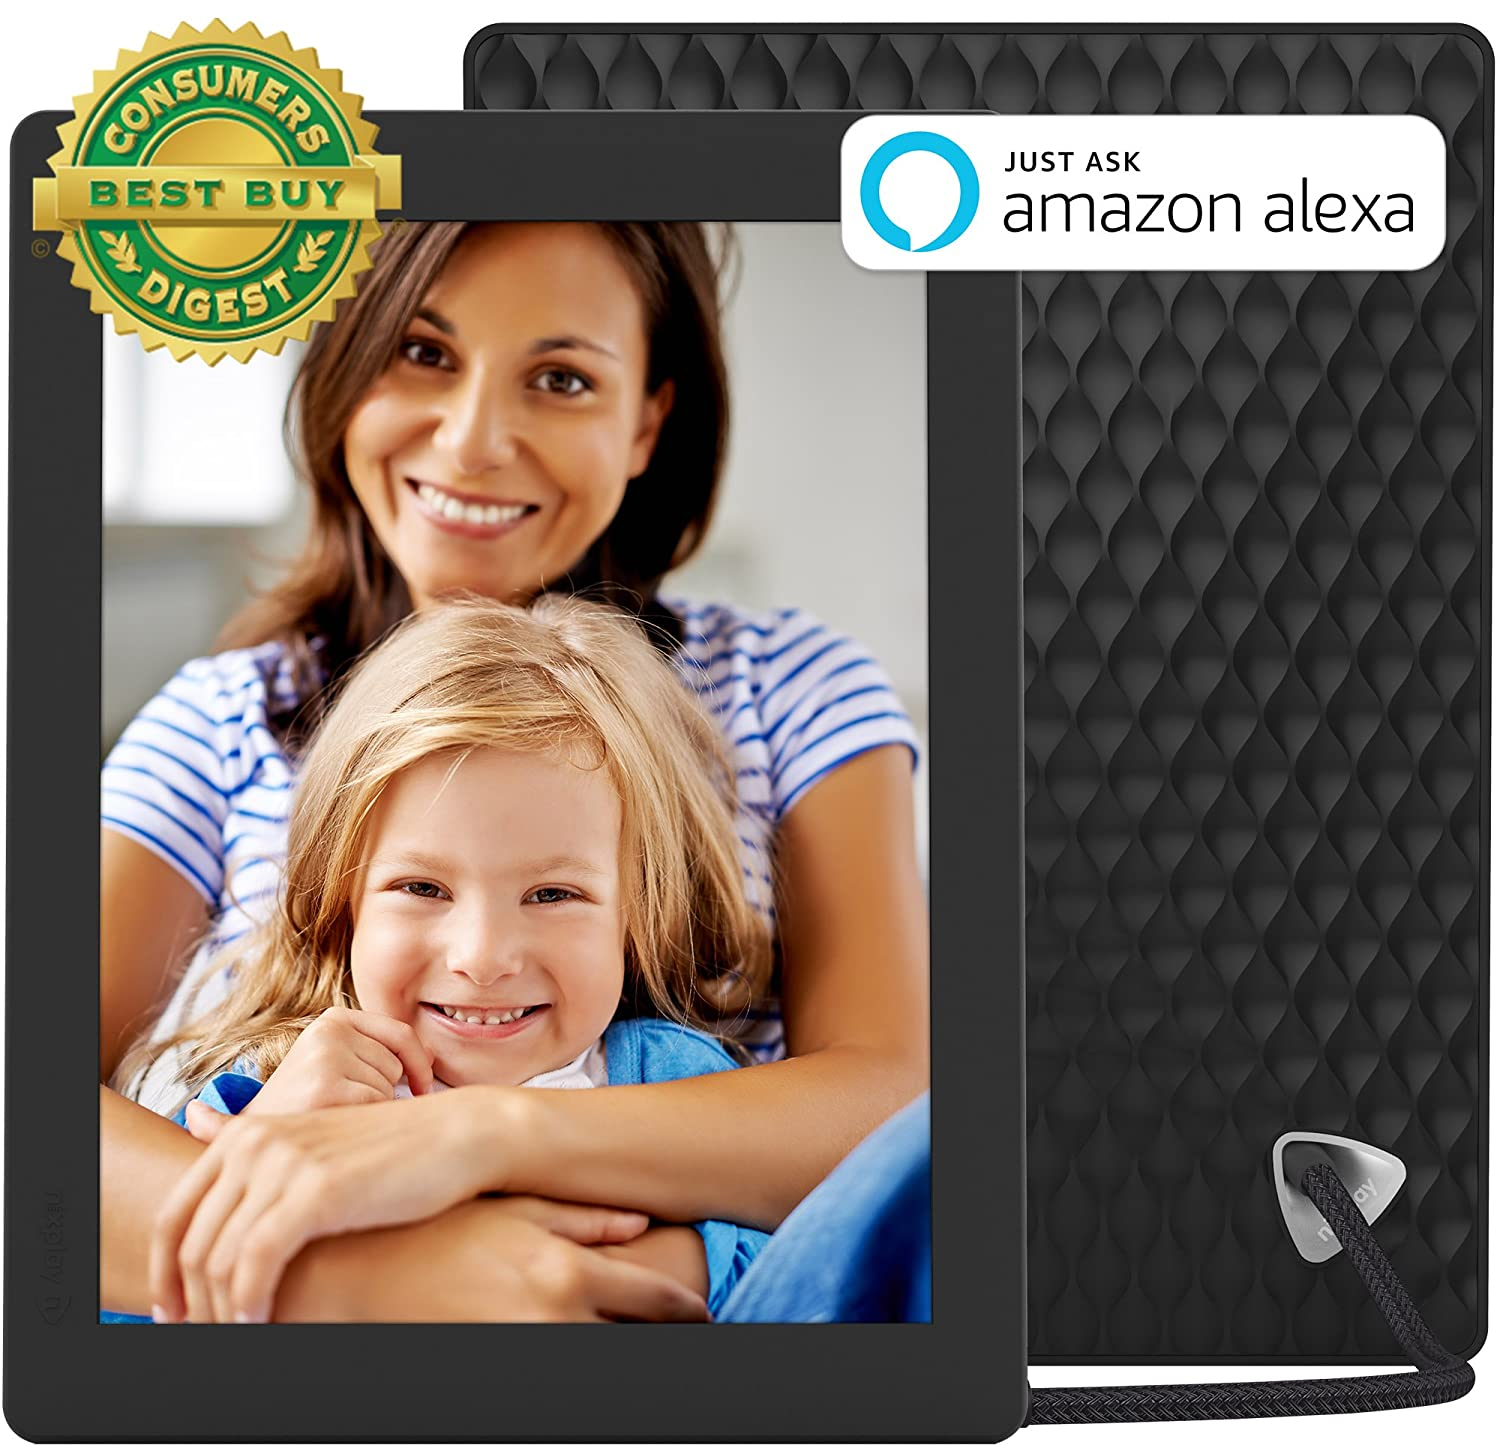 Amazon nixplay seed 10 inch wifi cloud digital photo frame amazon nixplay seed 10 inch wifi cloud digital photo frame with ips display iphone android app free 10gb online storage and motion sensor black jeuxipadfo Gallery